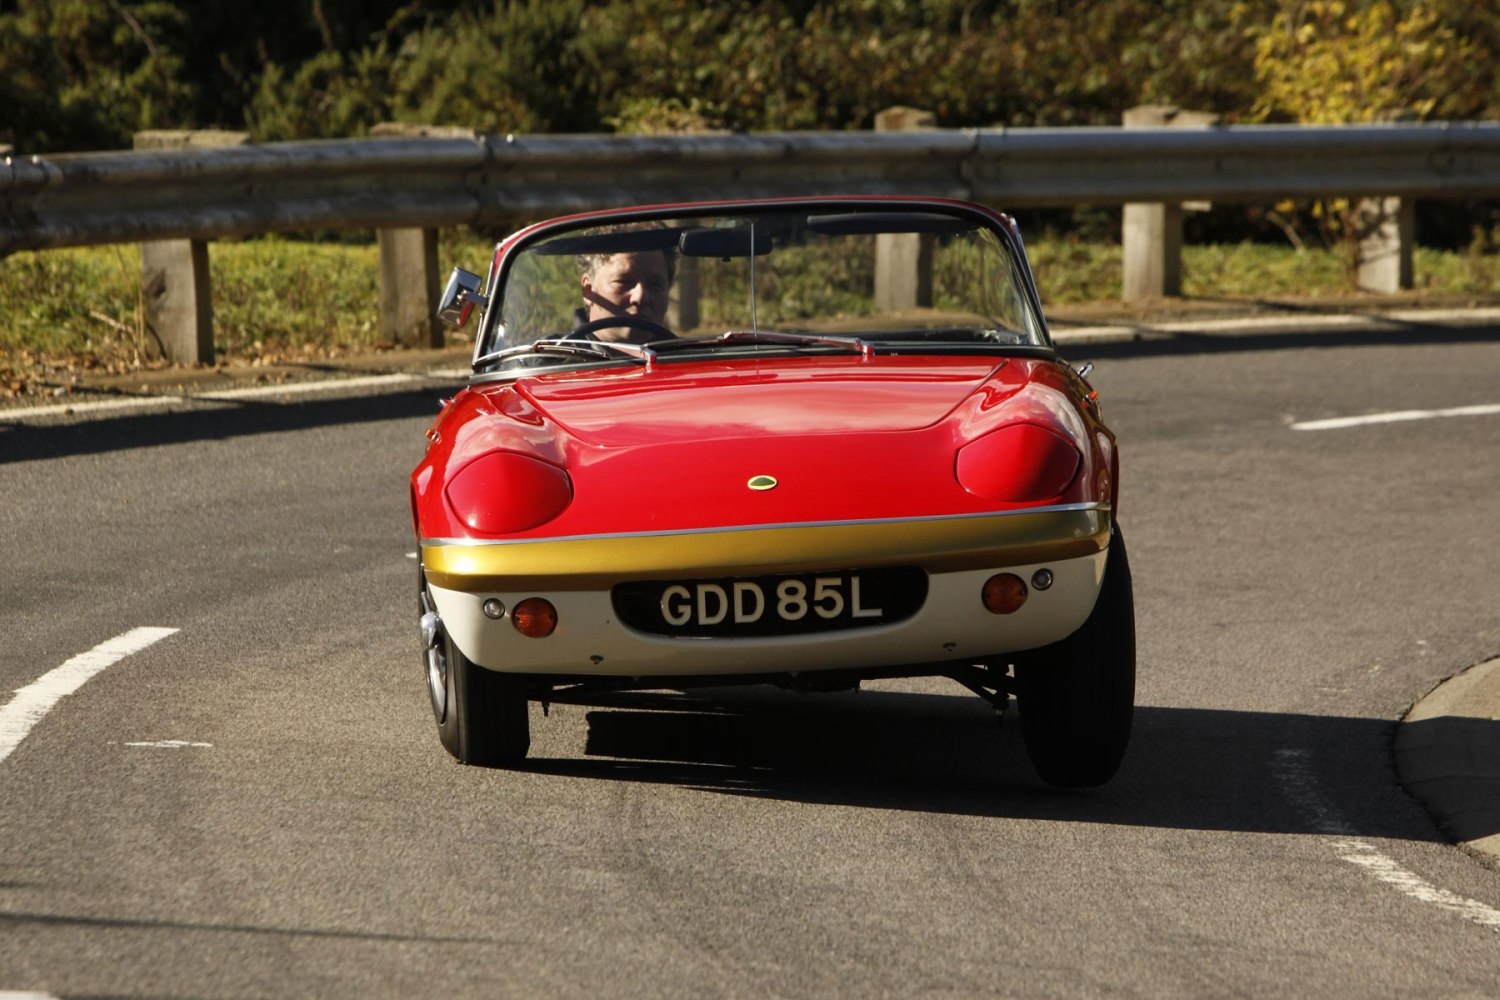 Roadster love: a brief history of the Mazda MX-5 | Motoring